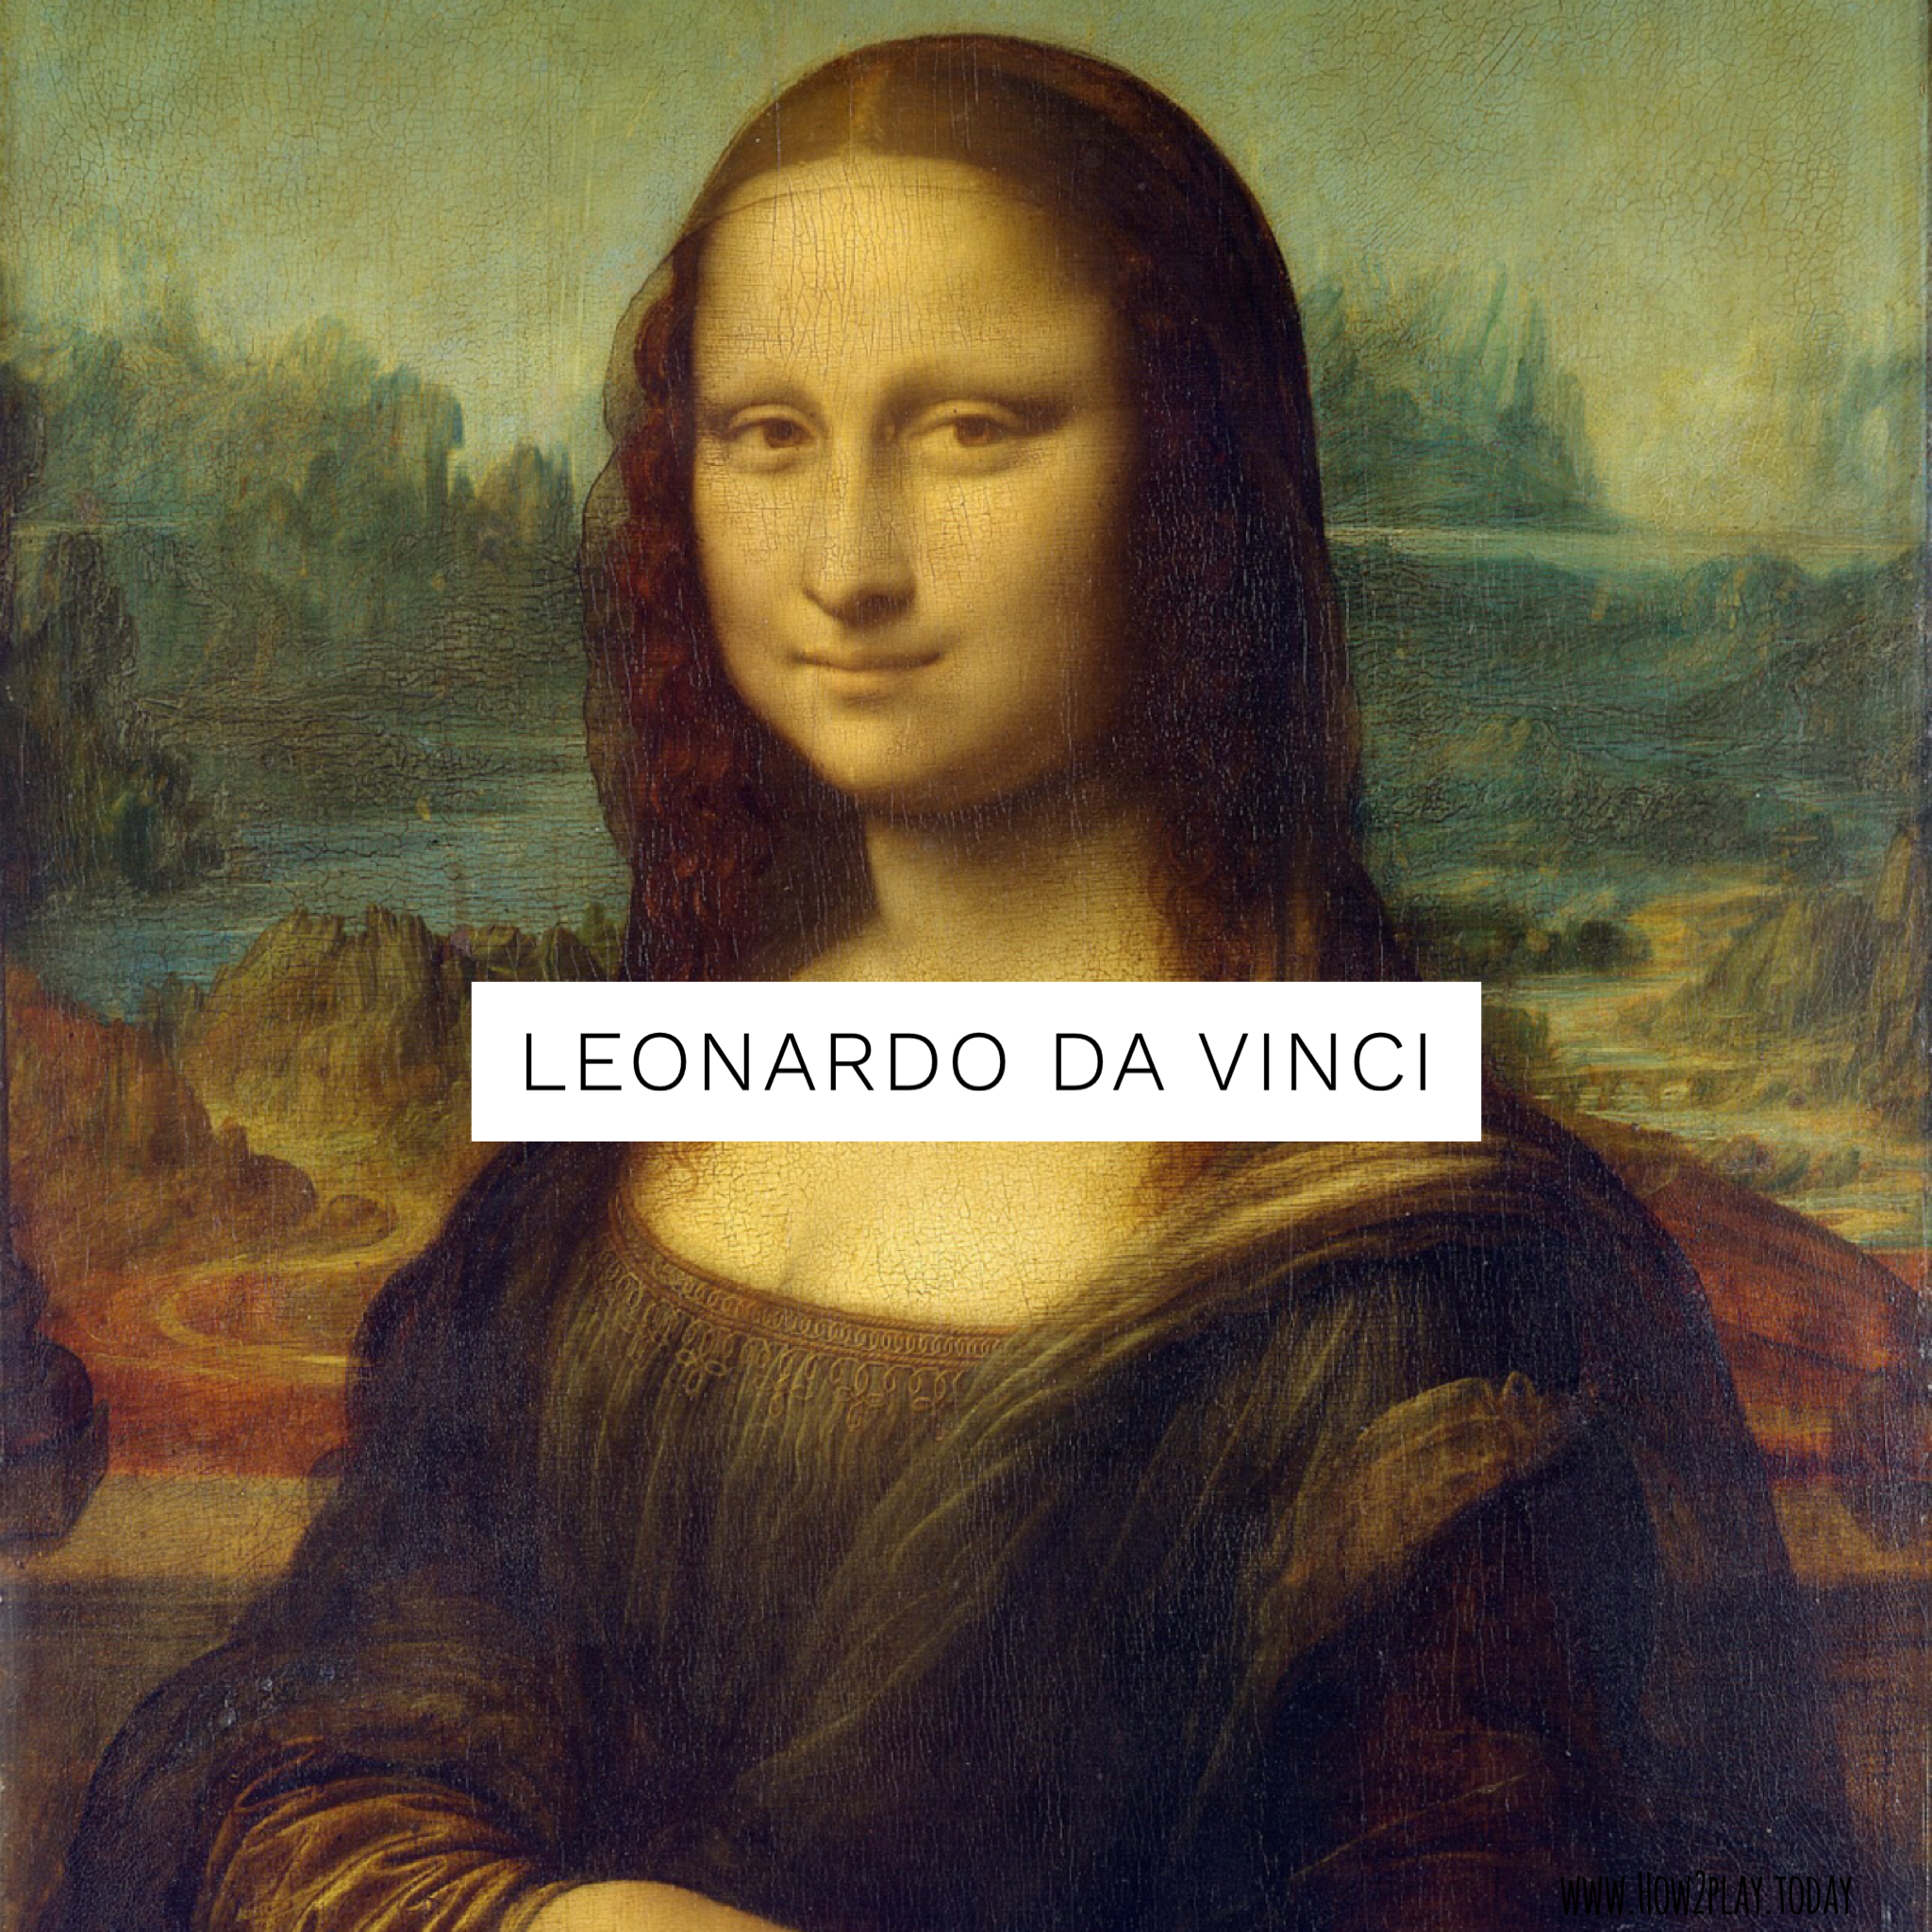 Leonardo Da Vinci inspired art learning / lesson plans for kids. Come explore art learning plans for preschool and elementary age children. Children will learn Elements of Art, Principles of Design while having the freedom of creative expression.